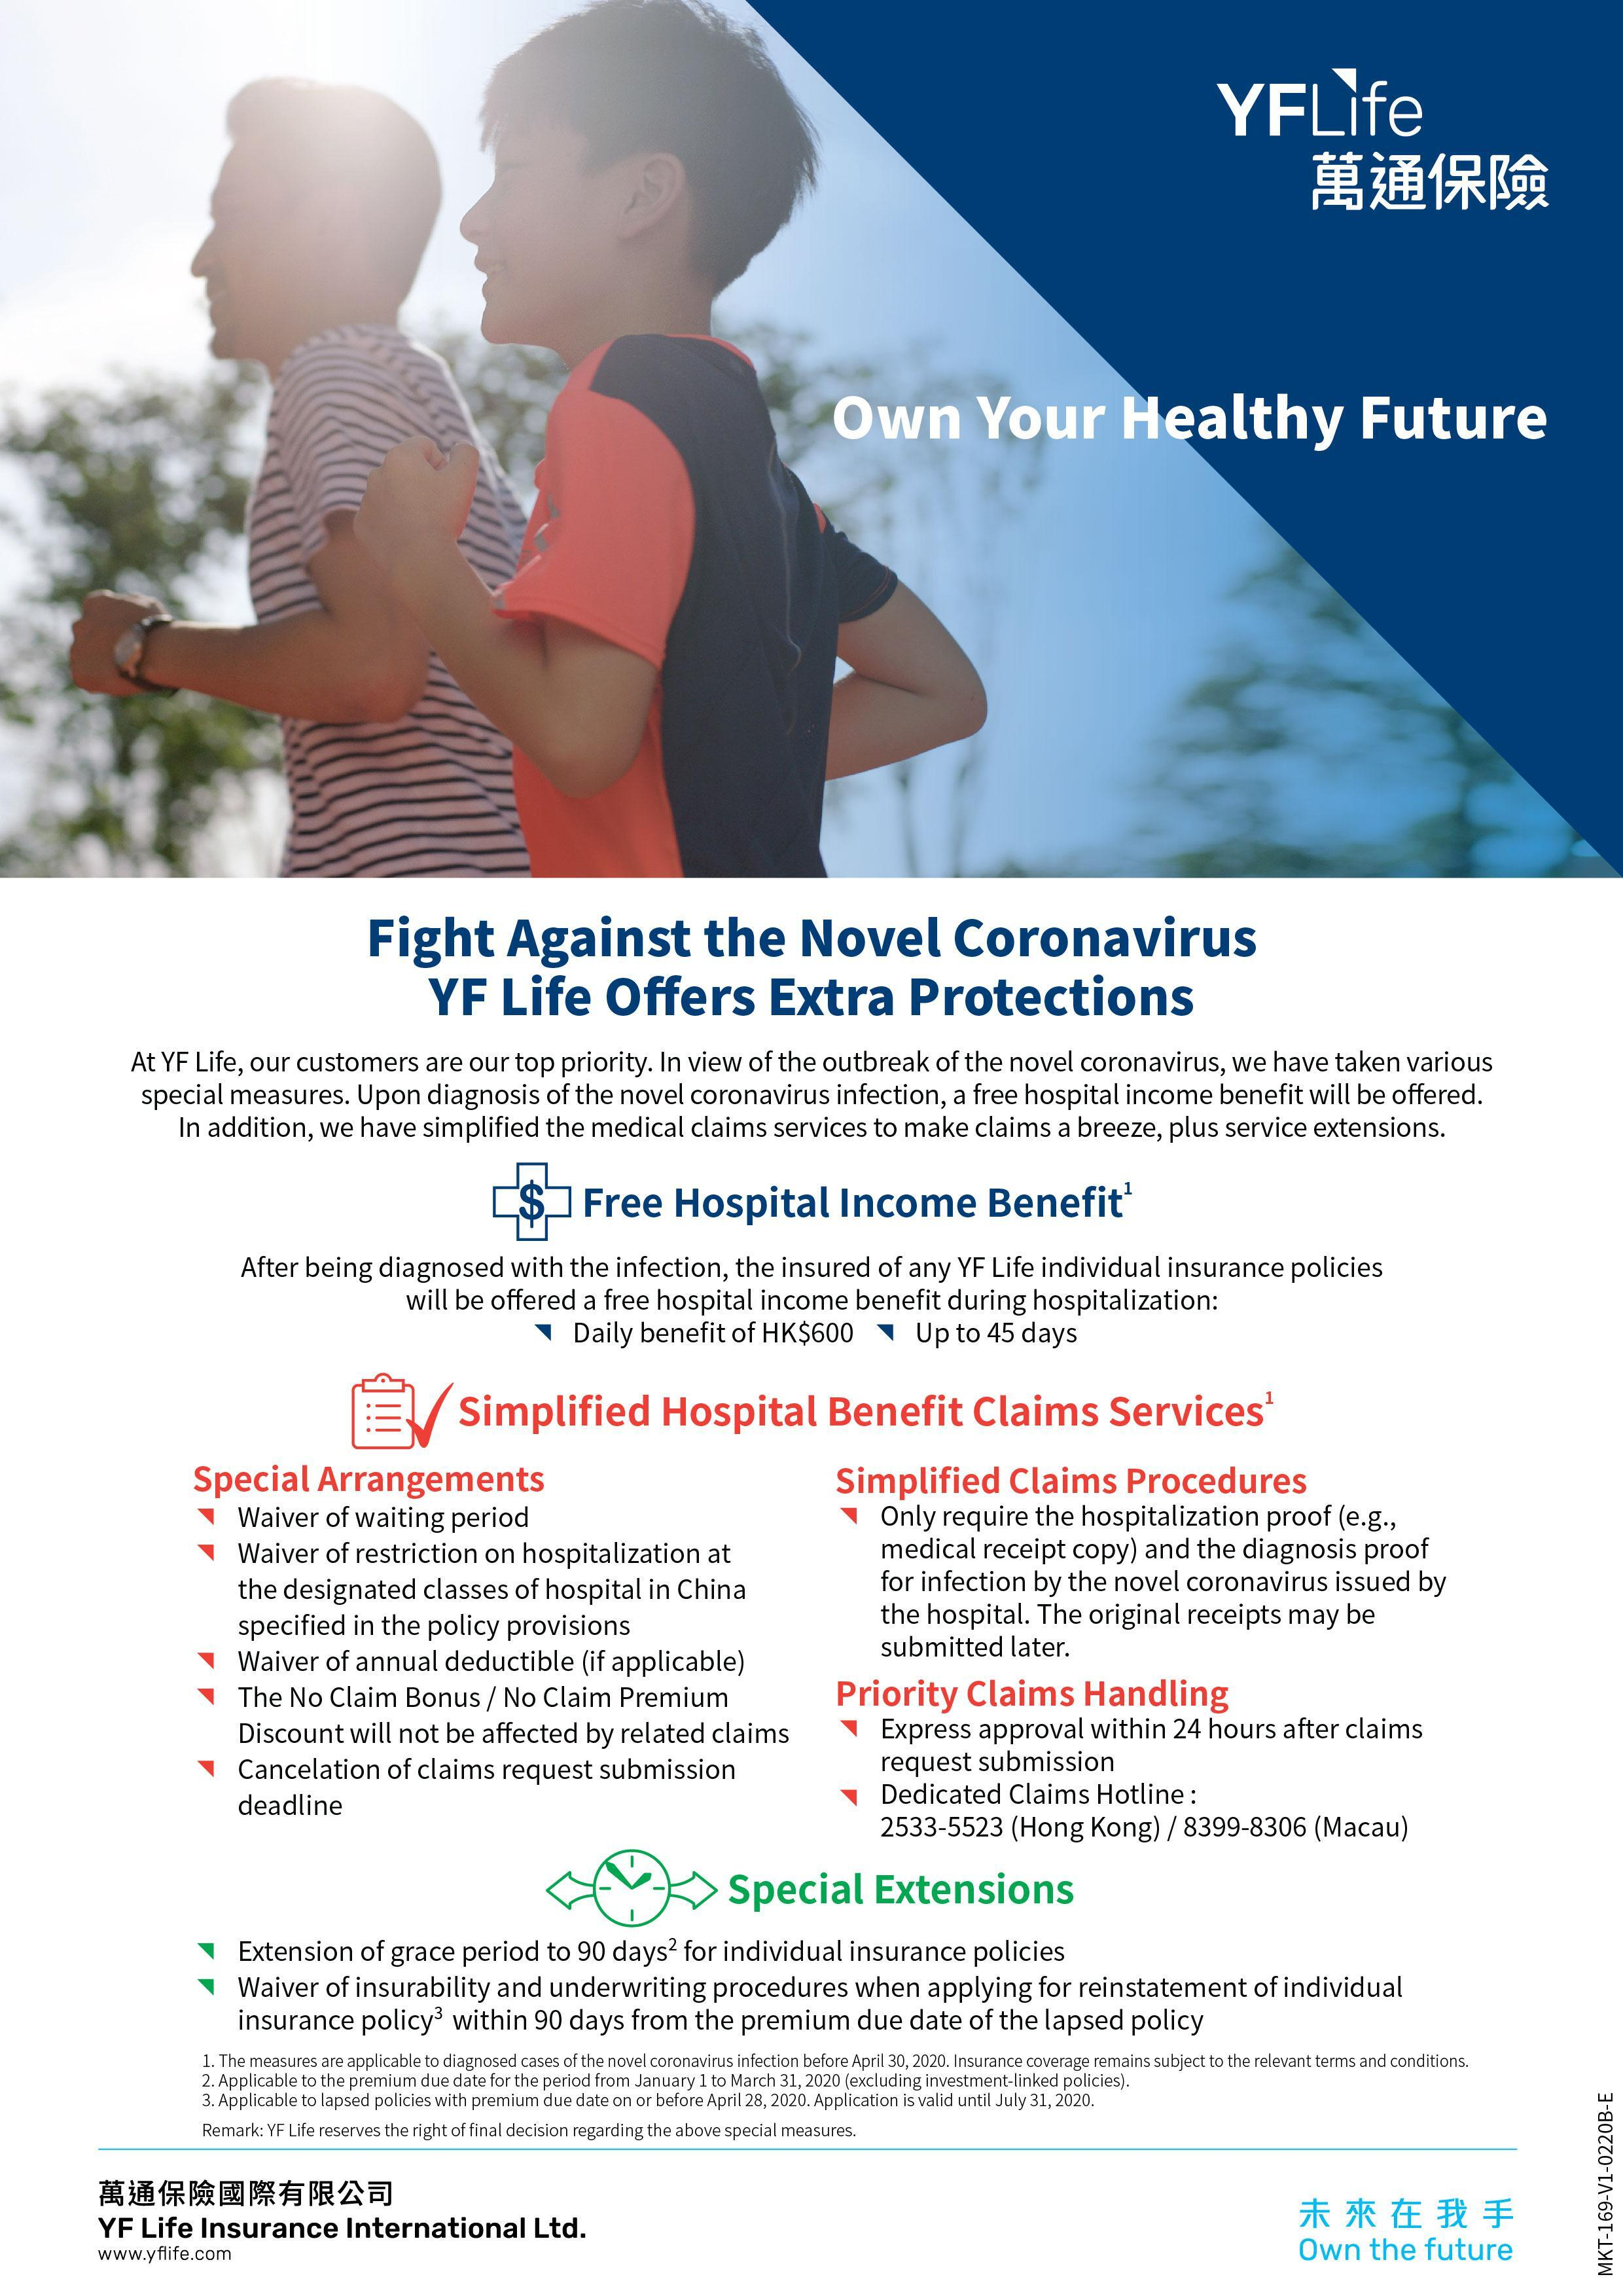 YF Life offers free hospital income benefit and simplified and express hospital benefit claims services for diagnosed cases of the novel coronavirus infection.